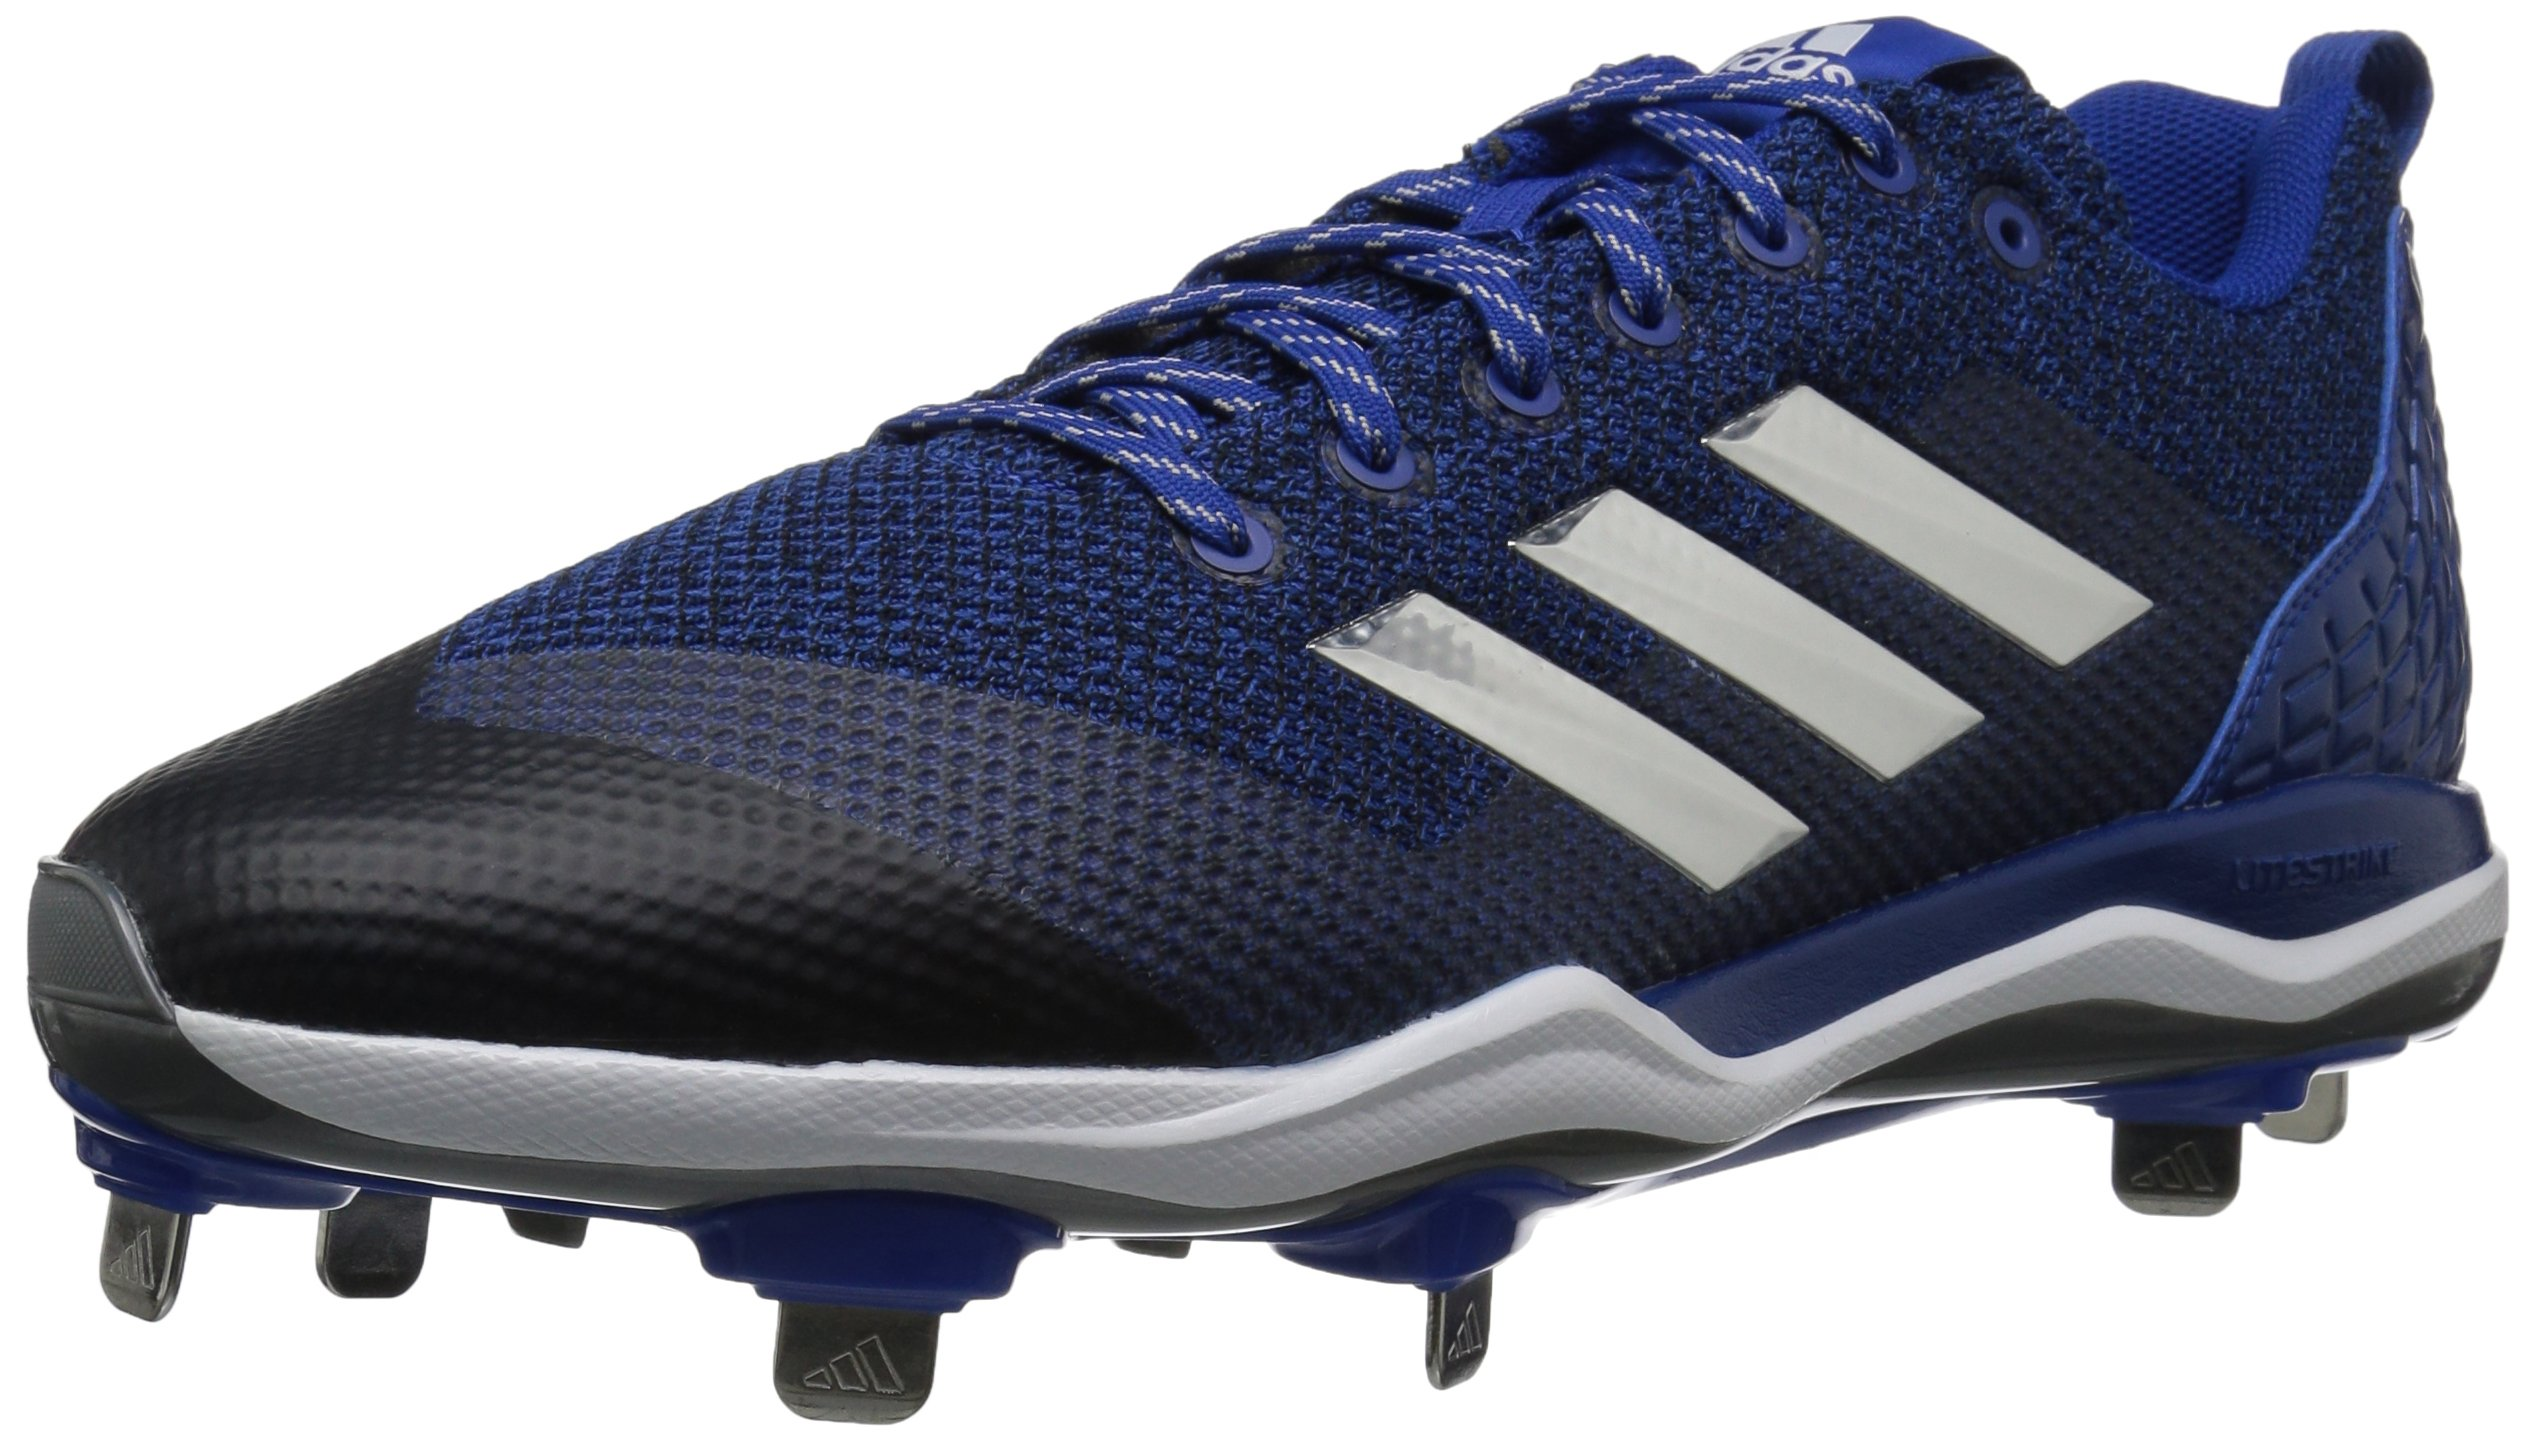 half off e625f 968a0 Galleon - Adidas Men s Freak X Carbon Mid Baseball Shoe, Collegiate Royal,  Silver Met, FTWR White, 12 M US